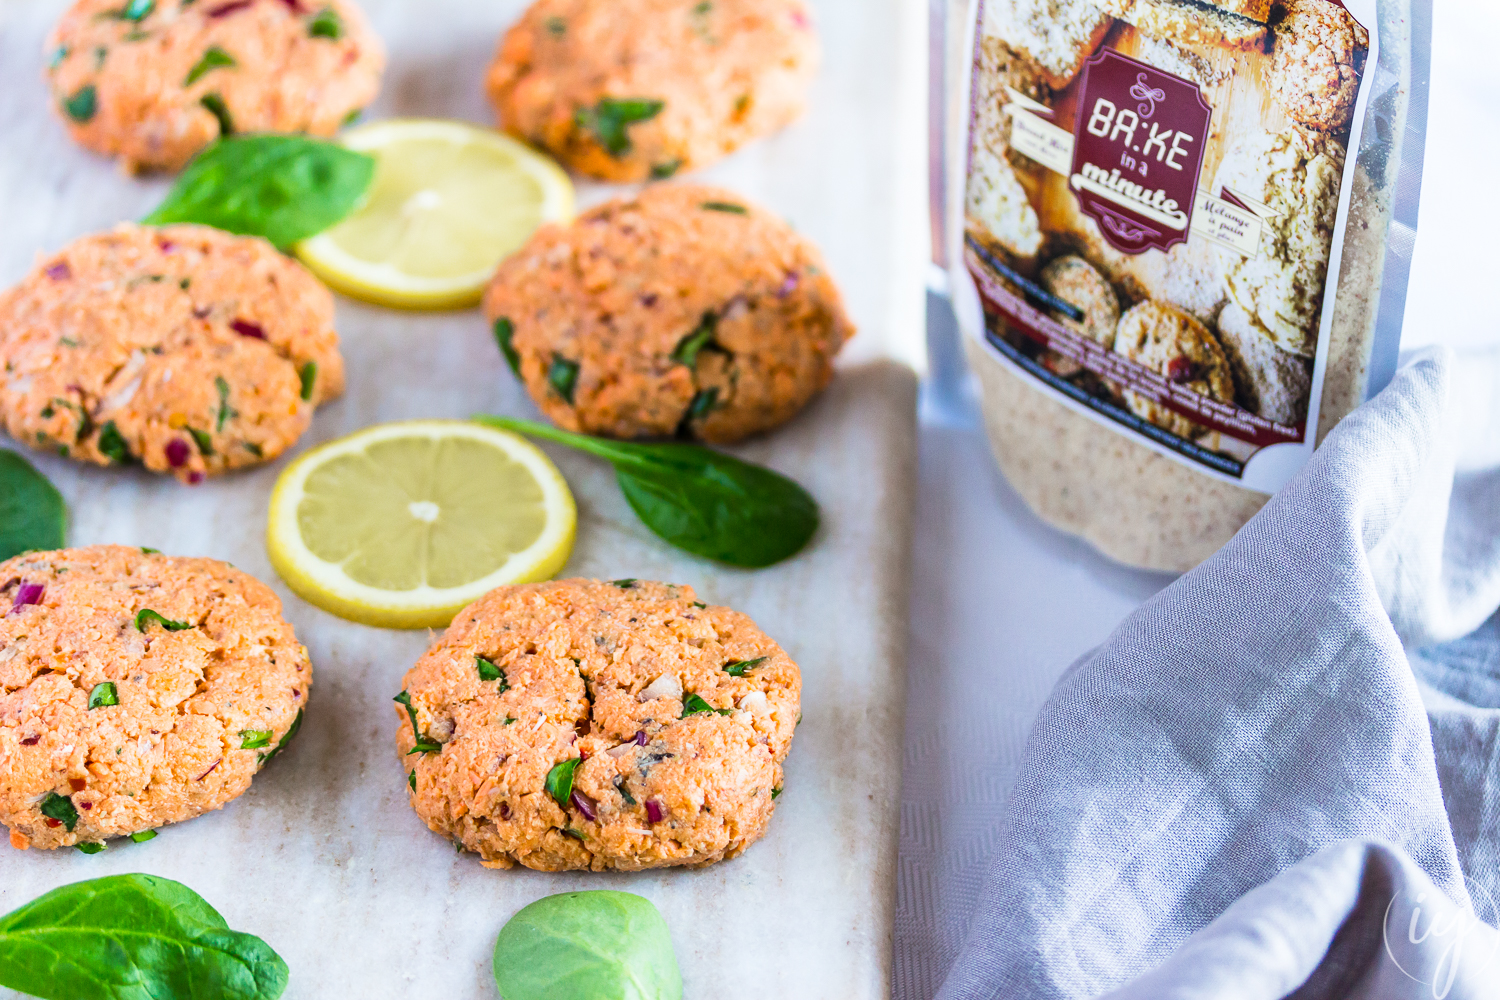 Bake-in-a-minute-Fish-Cakes1-IfyYani.jpg